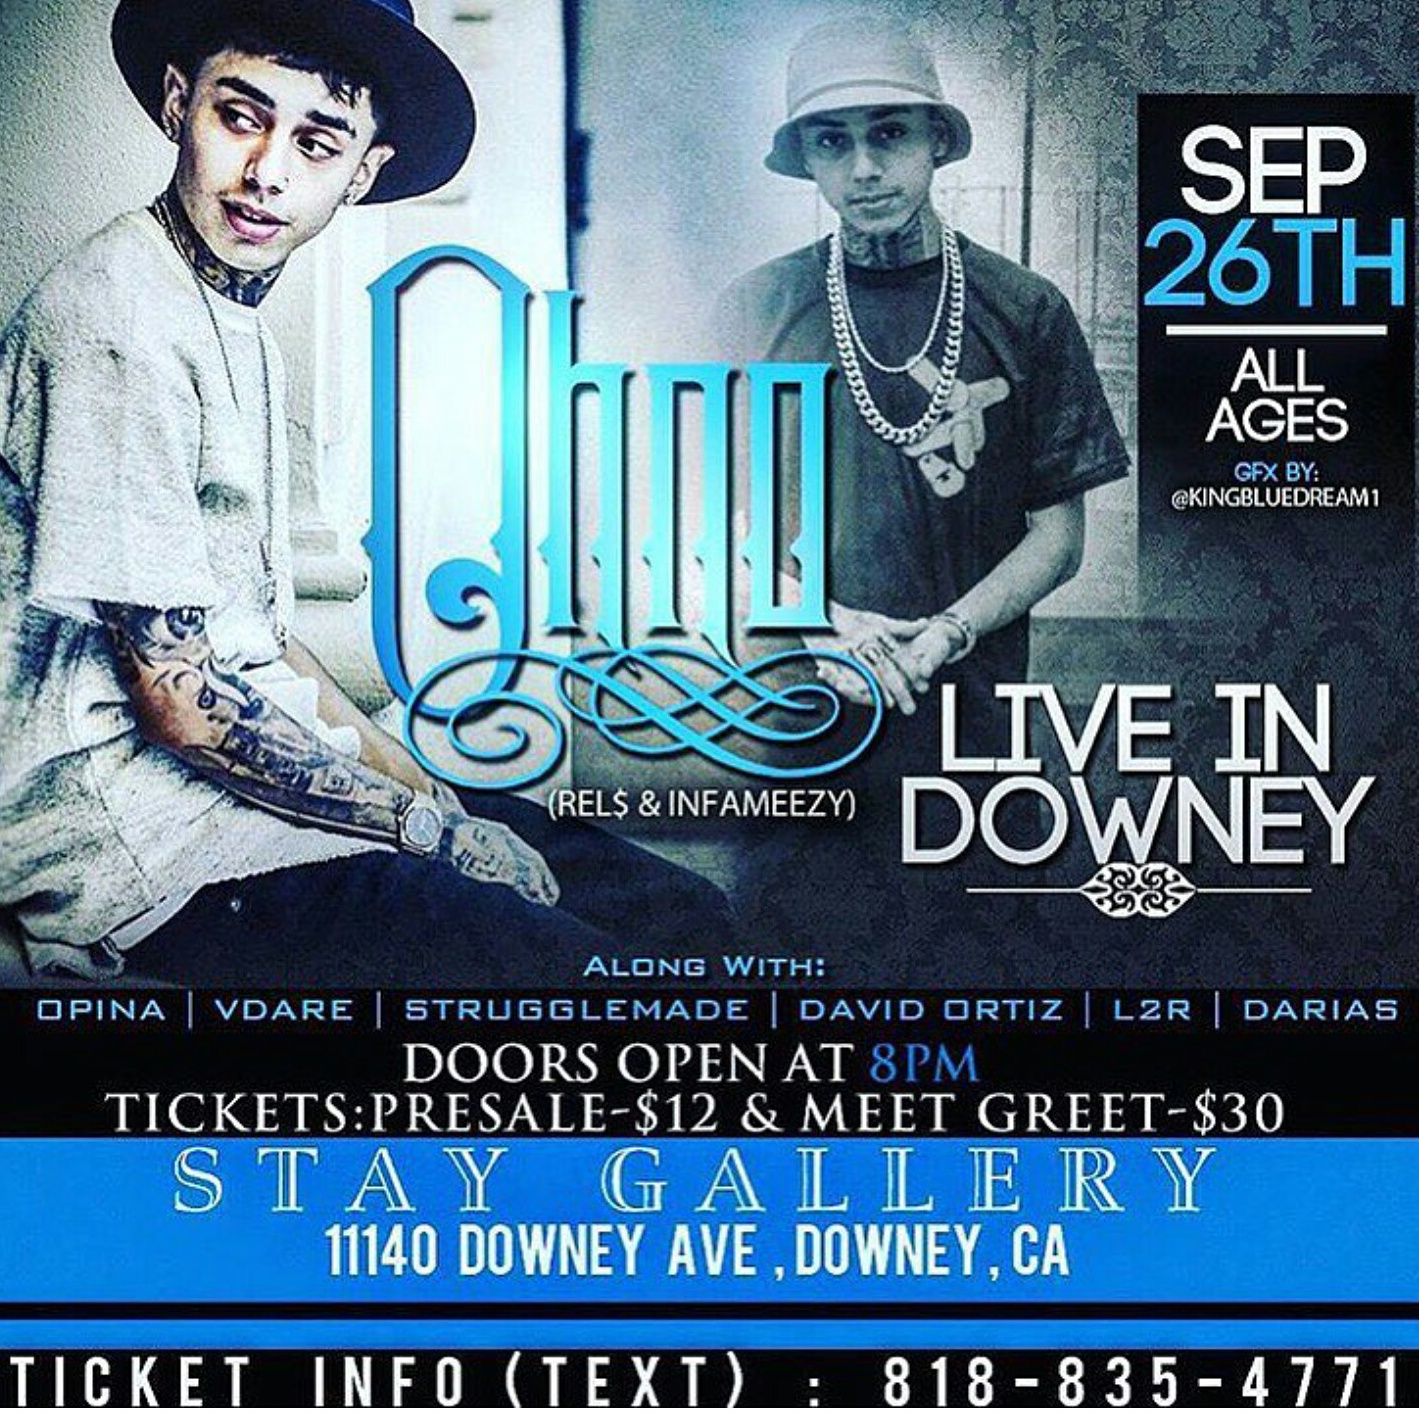 Ohno Live in Downey